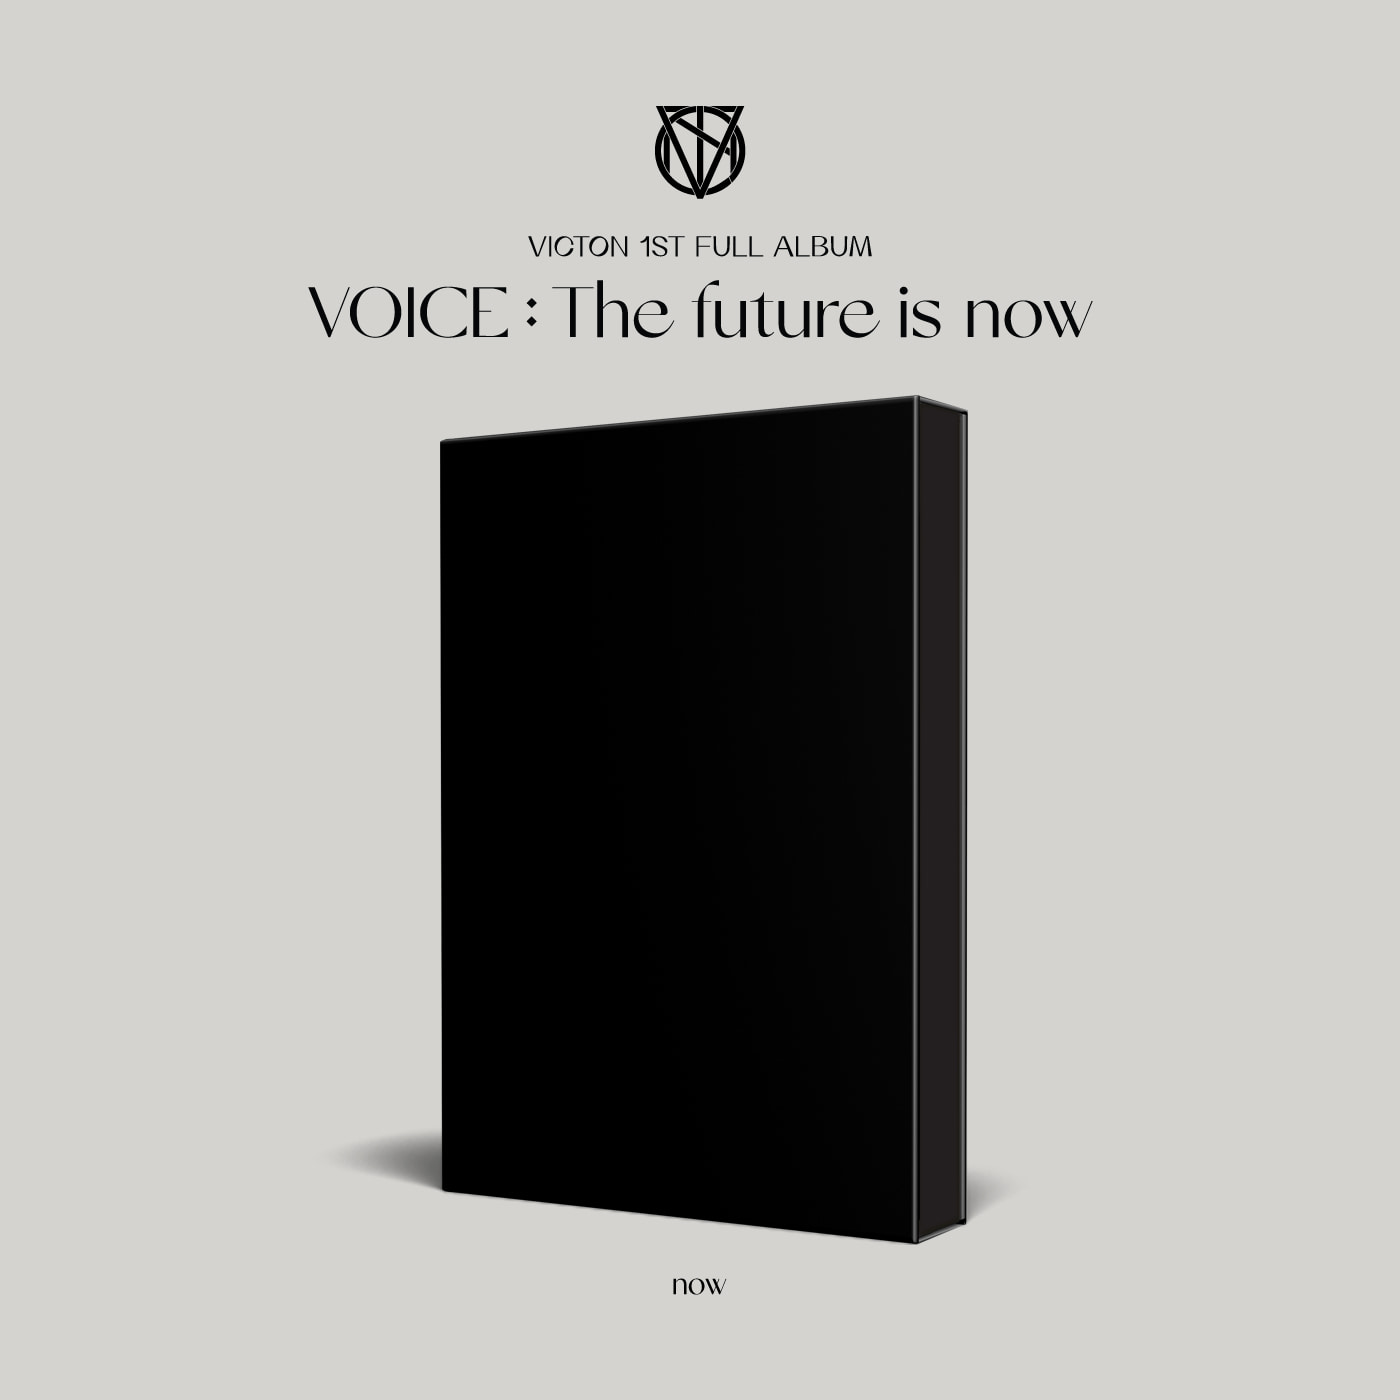 [PRE-ORDER] VICTON - Album Vol.1 [VOICE : The future is now] (now ver.)케이팝스토어(kpop store)